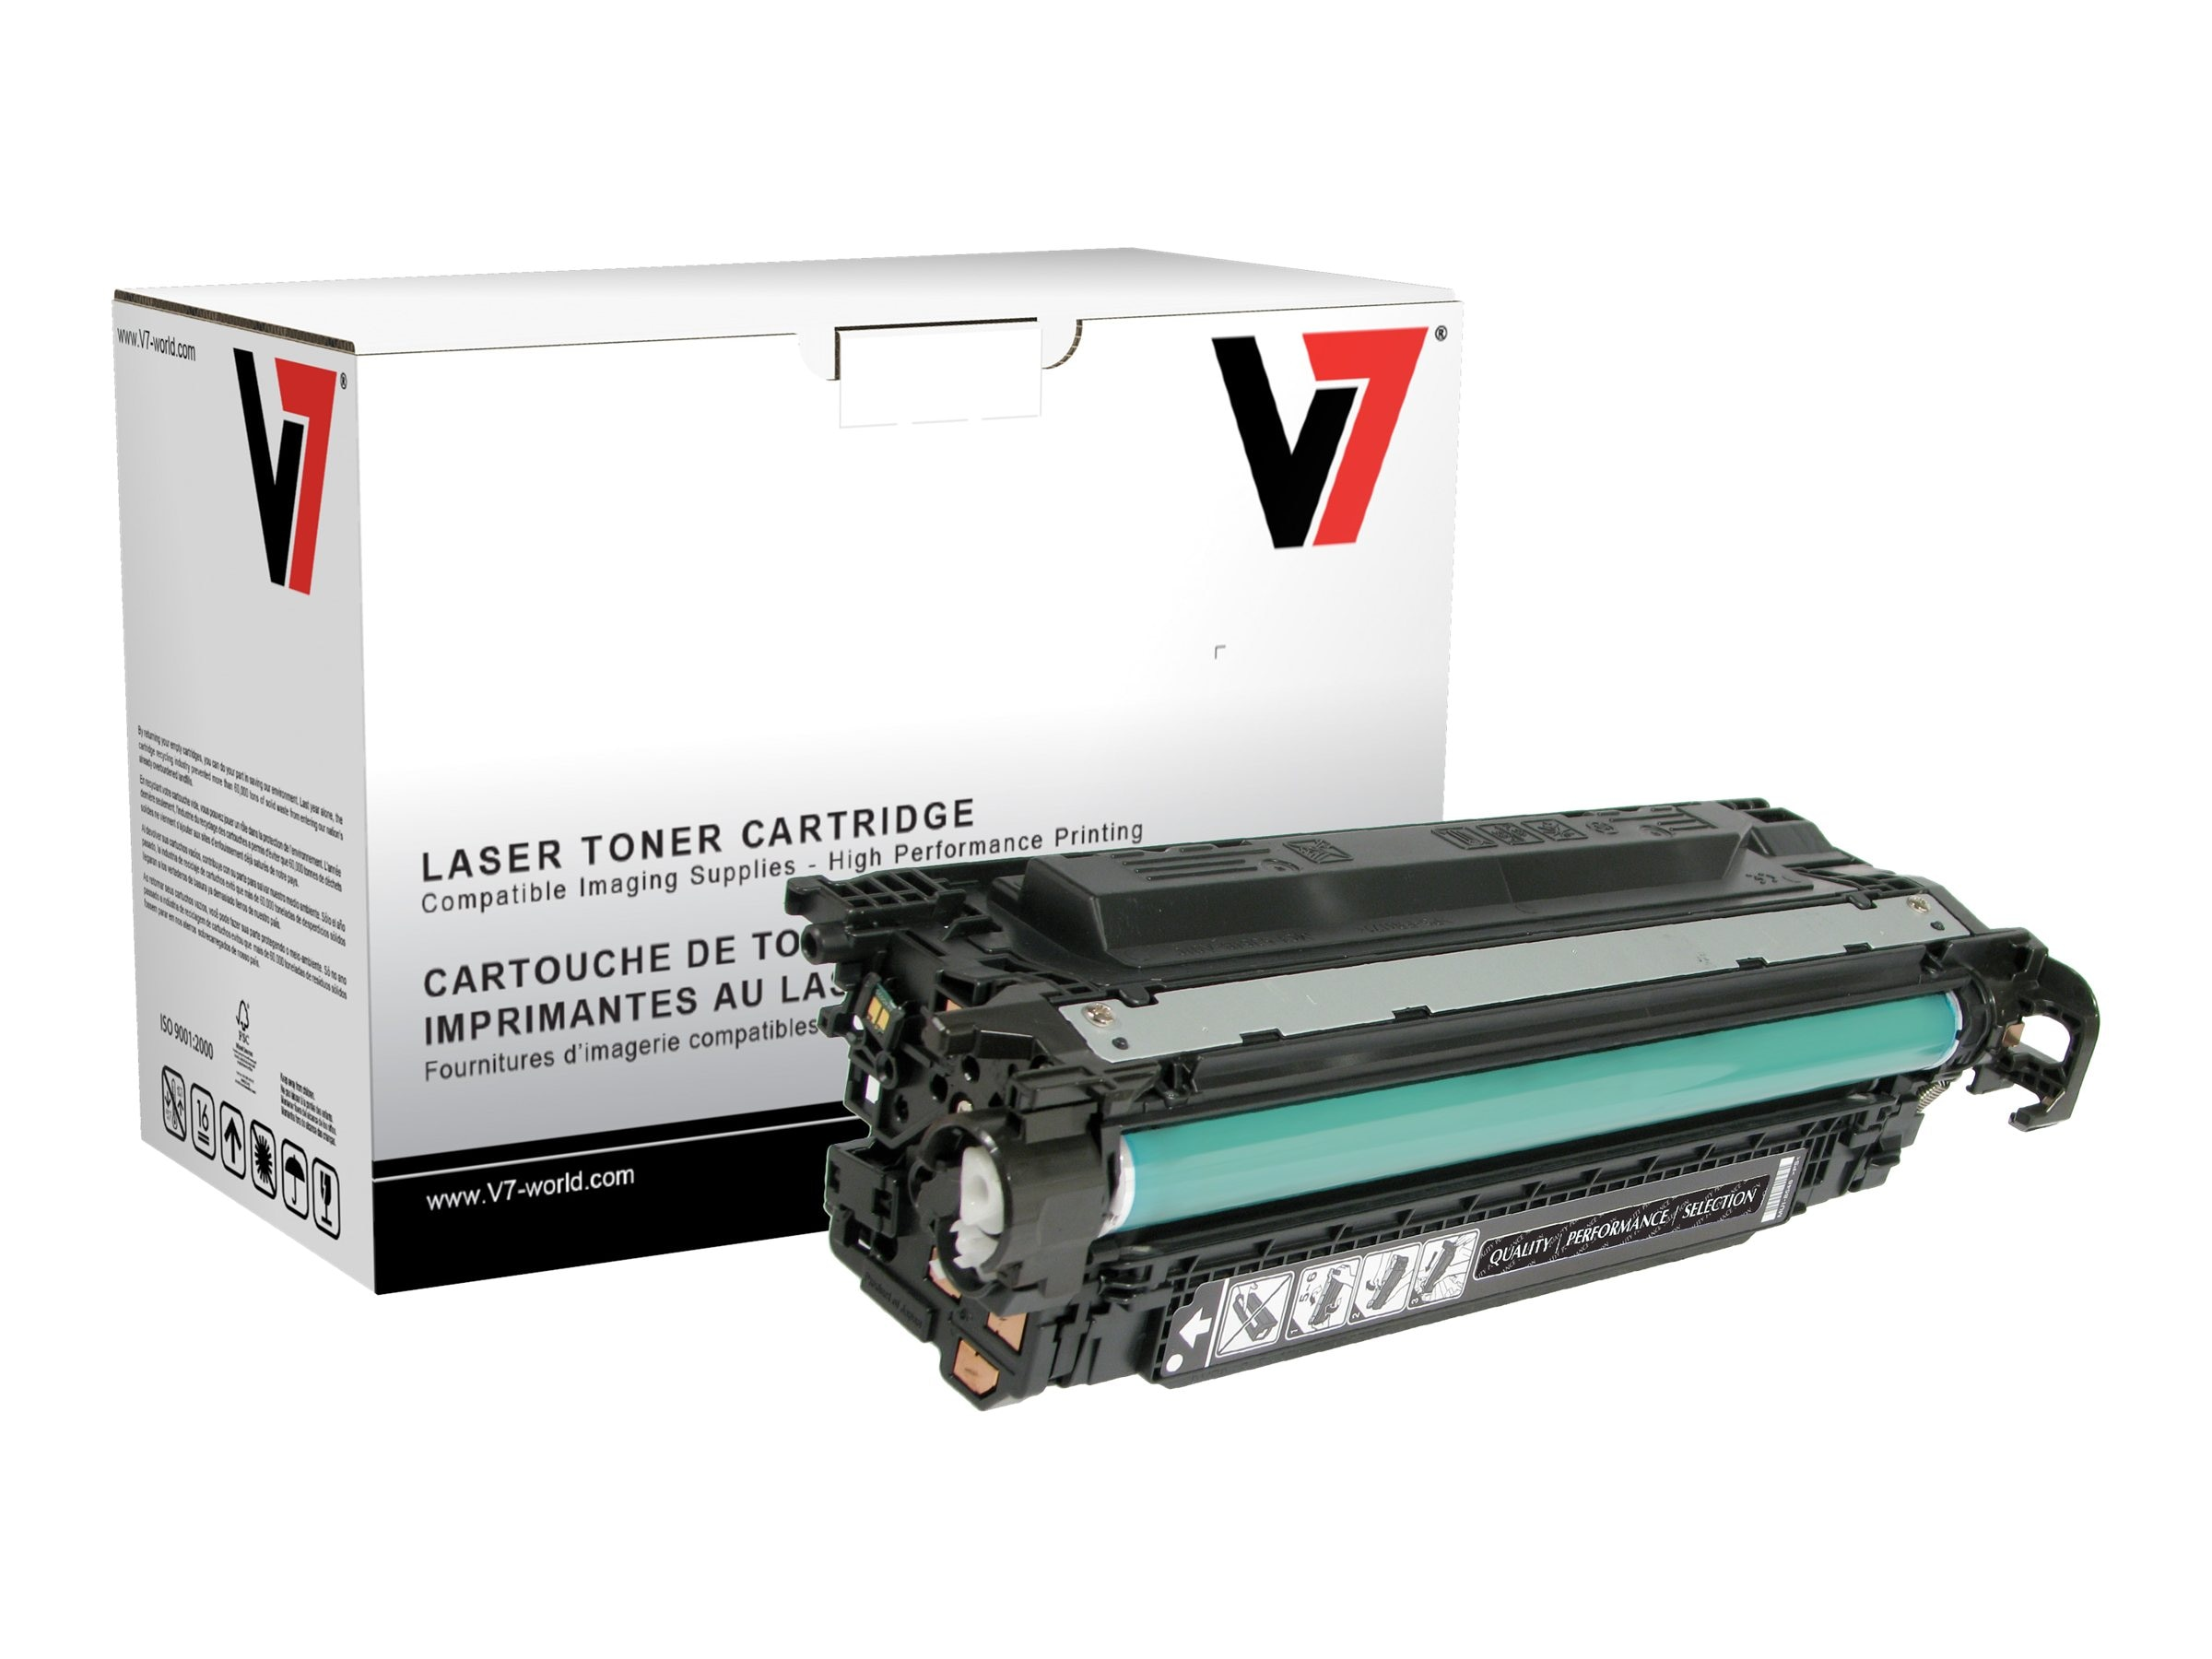 V7 CE250A Black Toner Cartridge for HP LaserJet CP3525 (TAA Compliant), THK23525, 13714934, Toner and Imaging Components